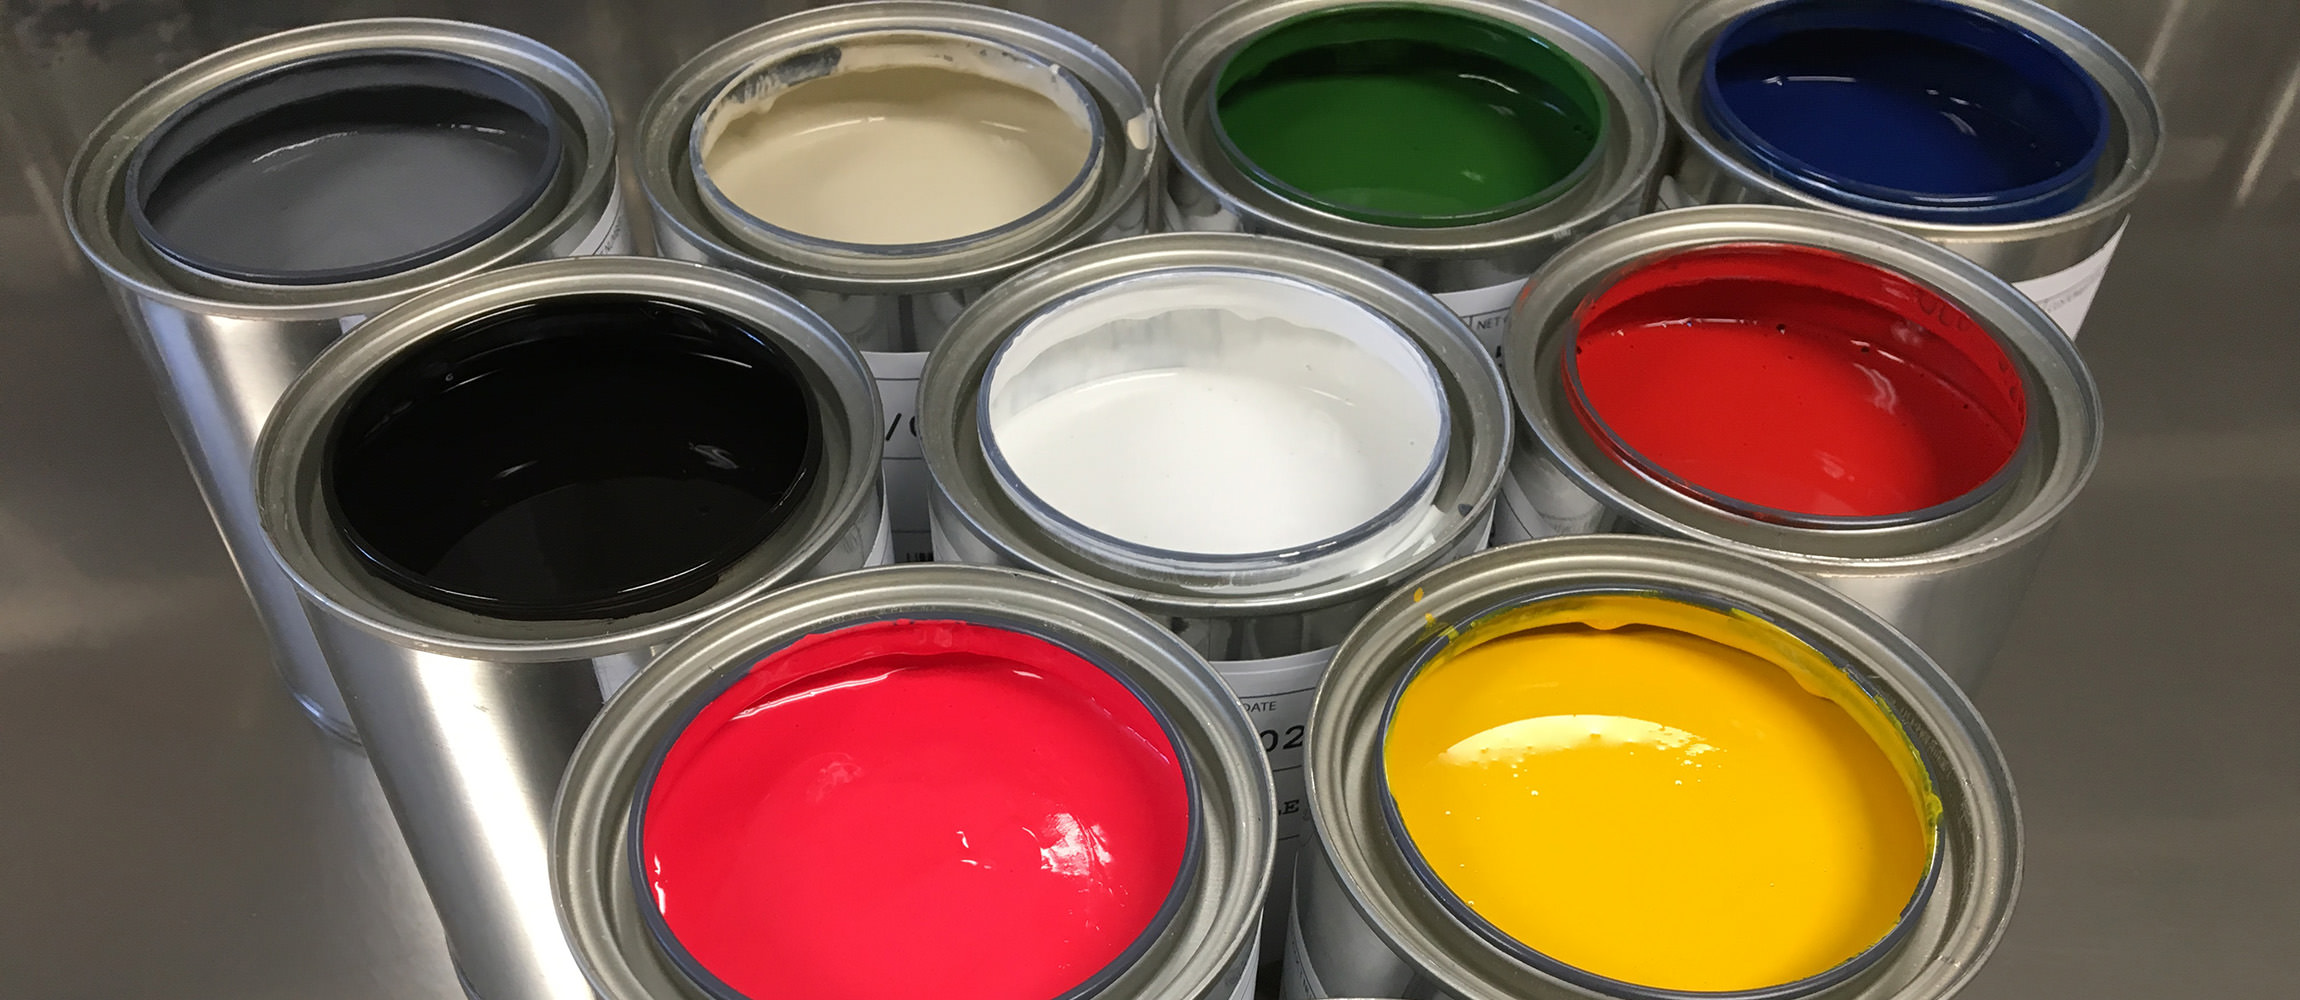 Scroller Open Paint Cans